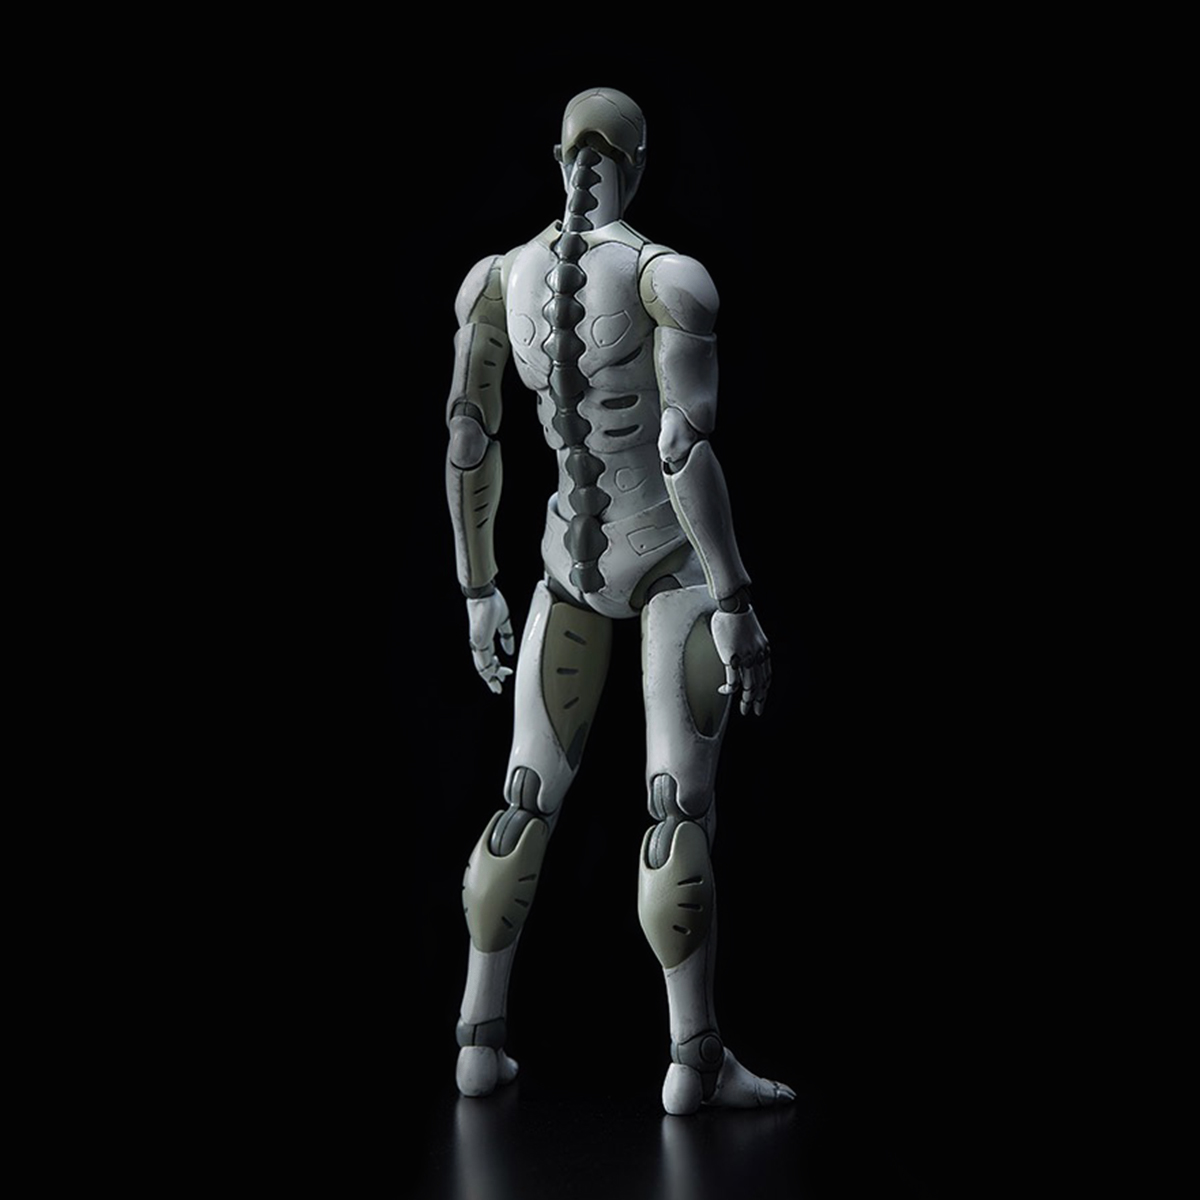 1/12 Synthetic Human Male Body Action Figure PVC Model Doll For Drawing Sketch